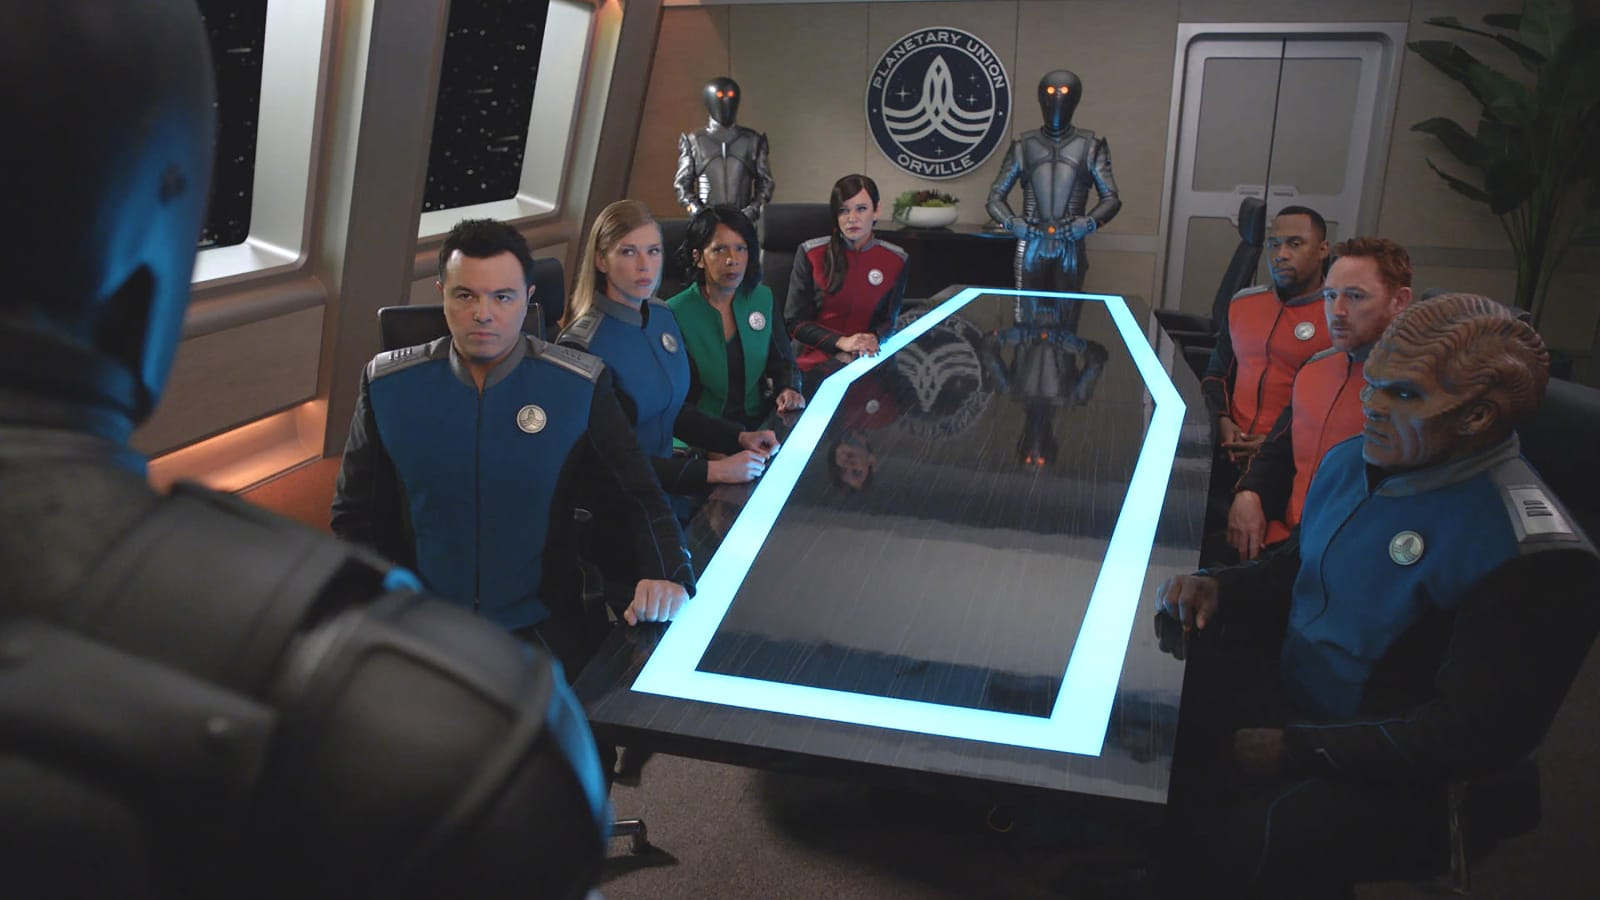 The Orville' season 3 will be a Hulu exclusive | Engadget